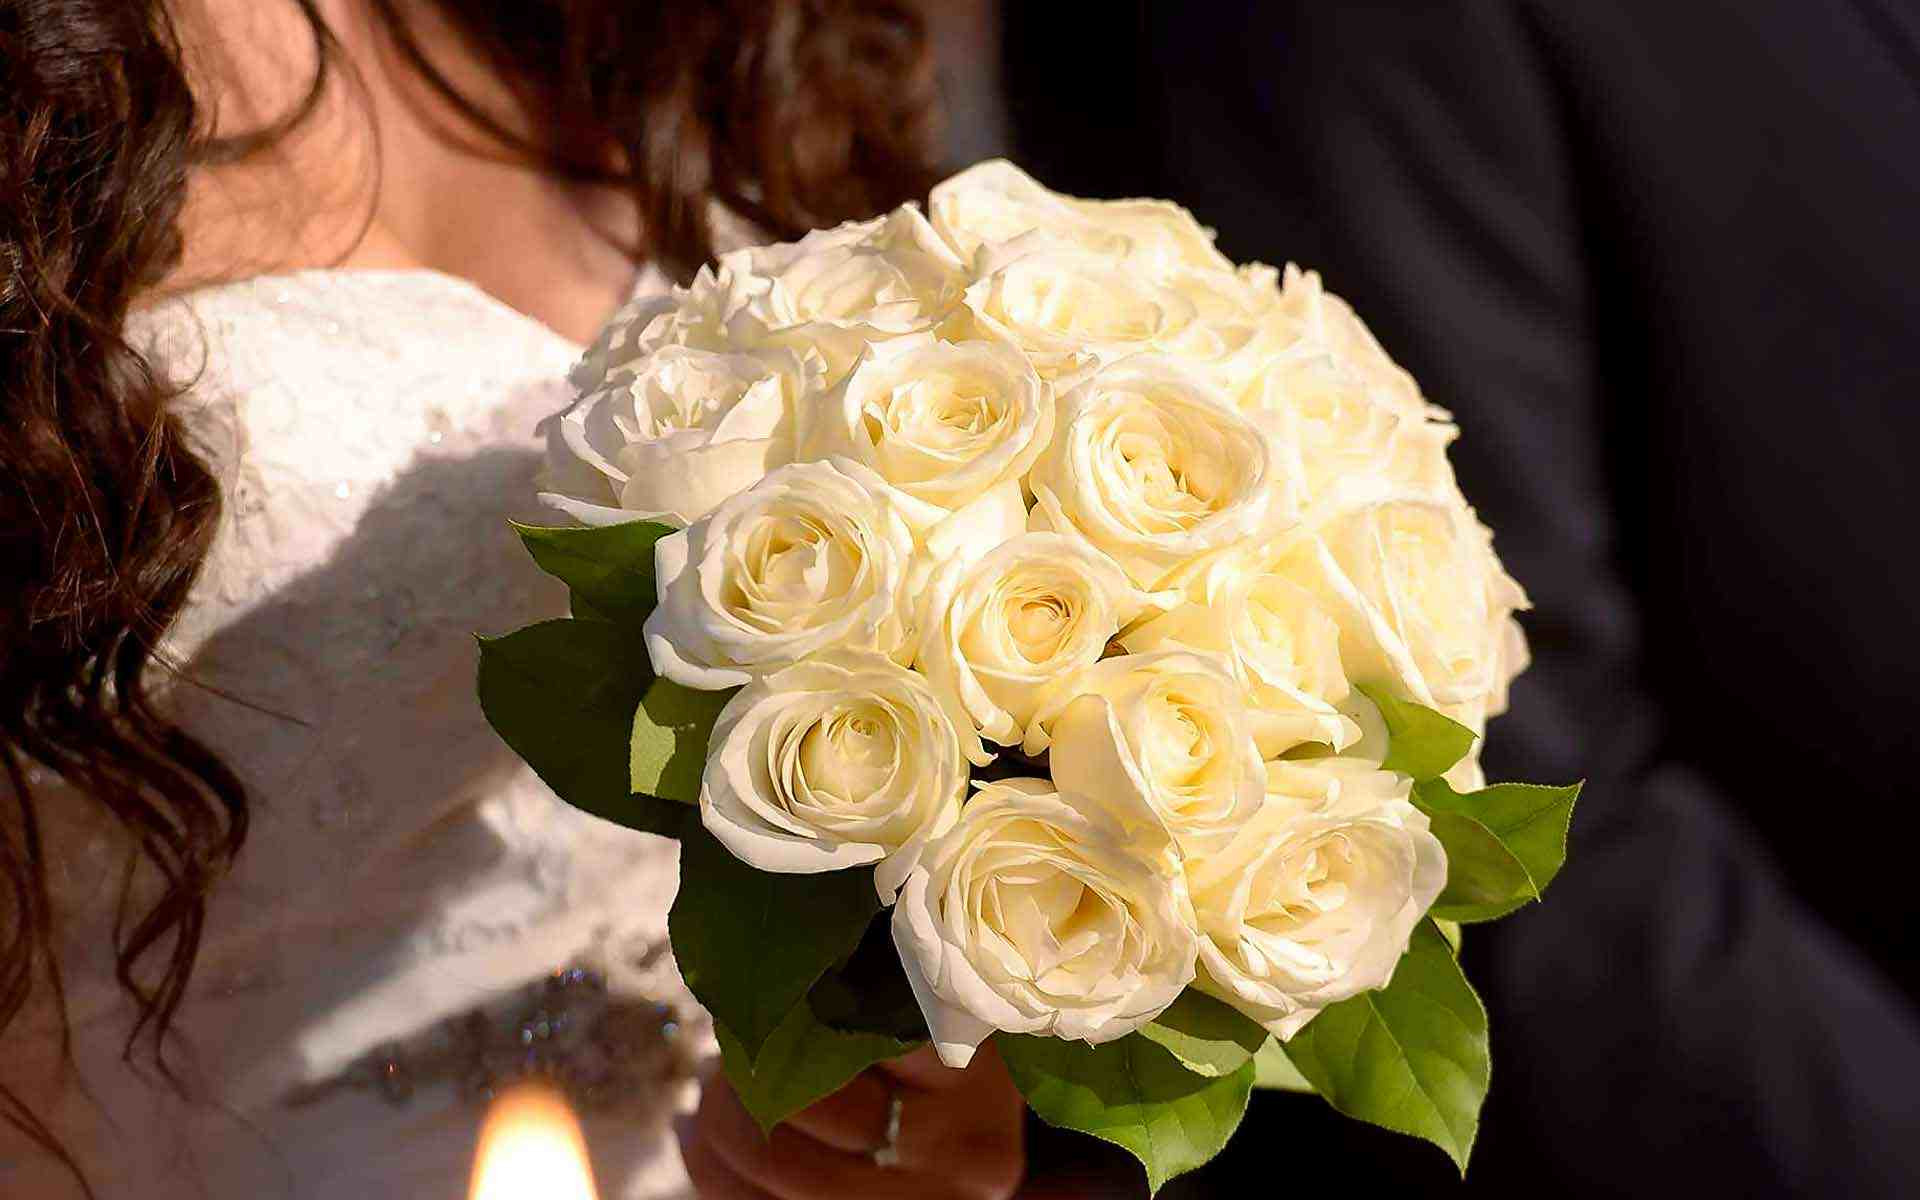 Timeless-Elegant-White-Rose-Bouquet-by-Diamond-Events-Wedding-Event-planning-services